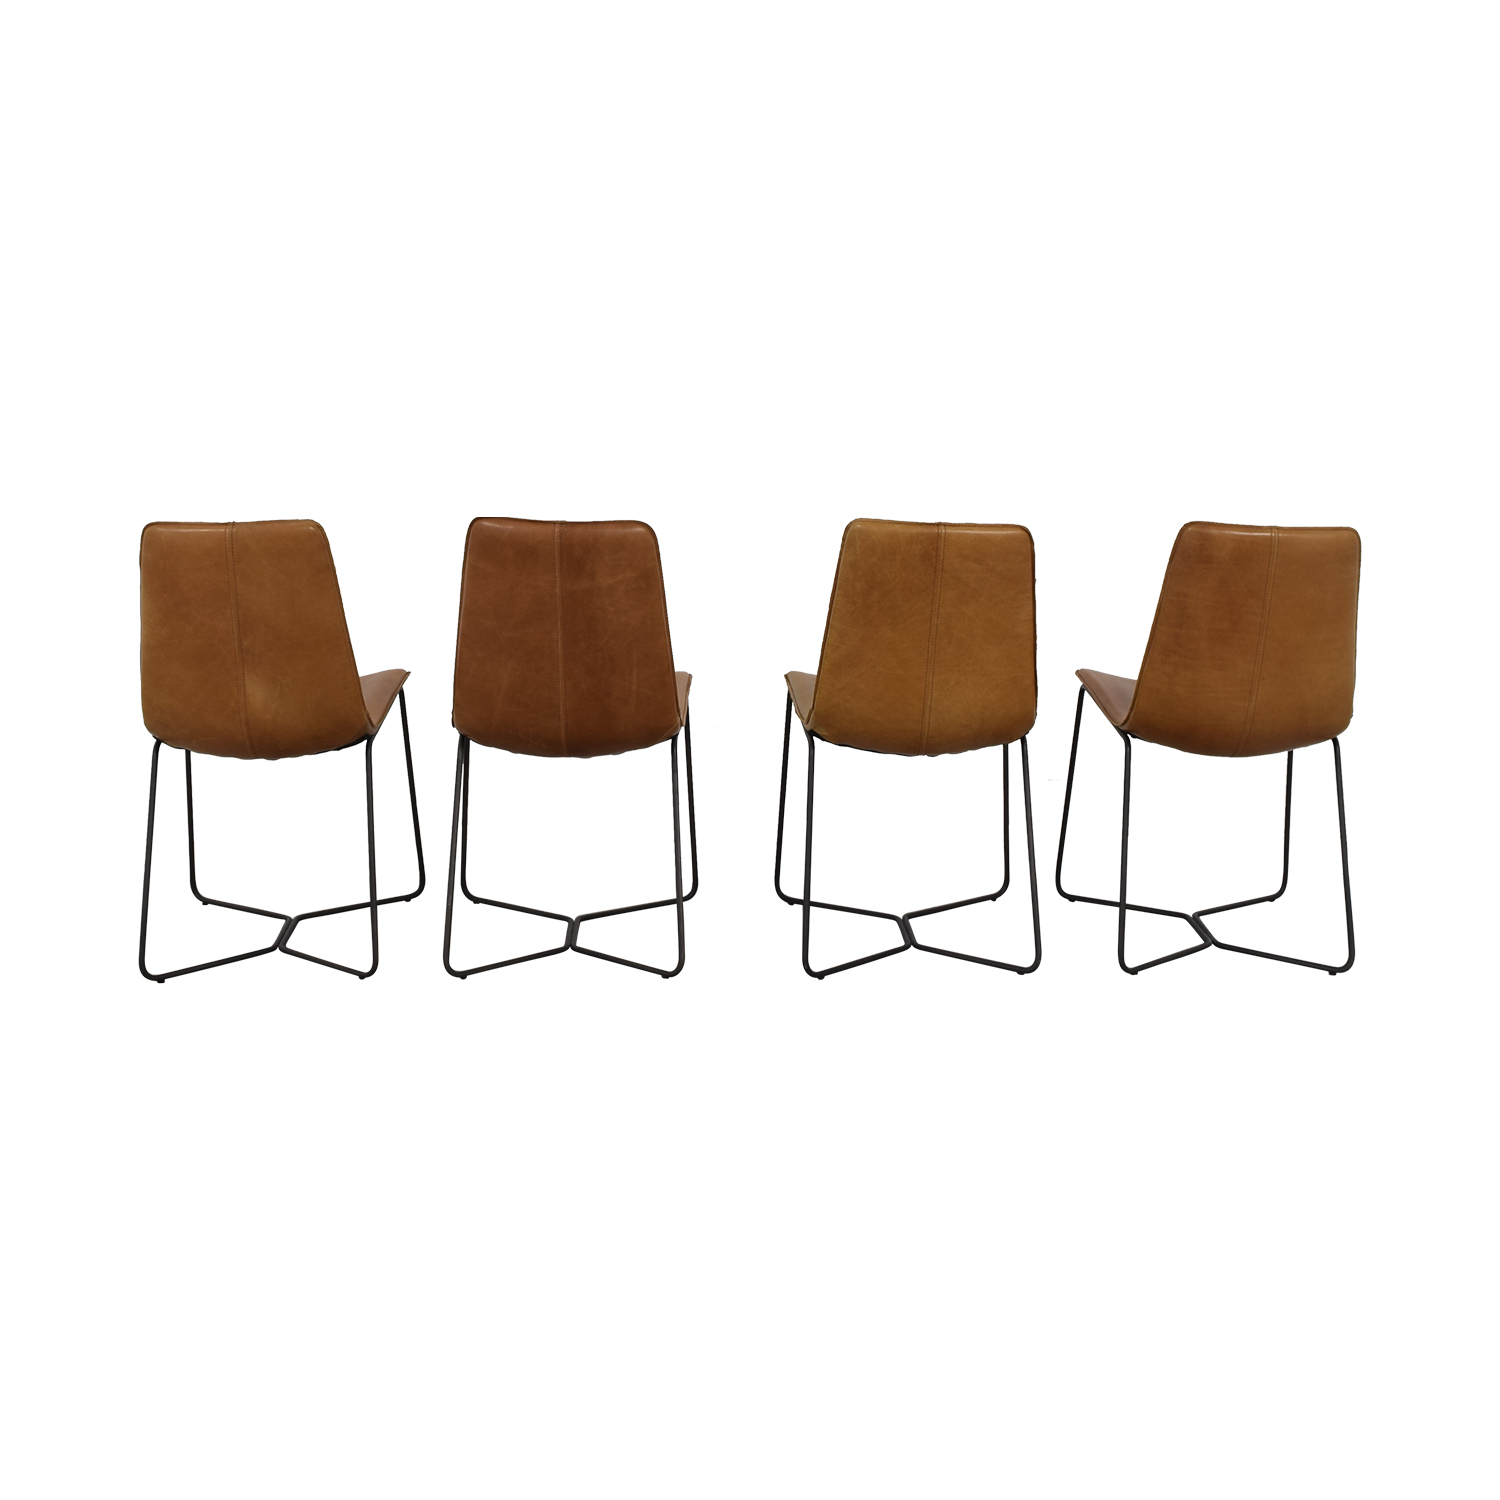 West Elm Leather Slope Dining Chair / Chairs